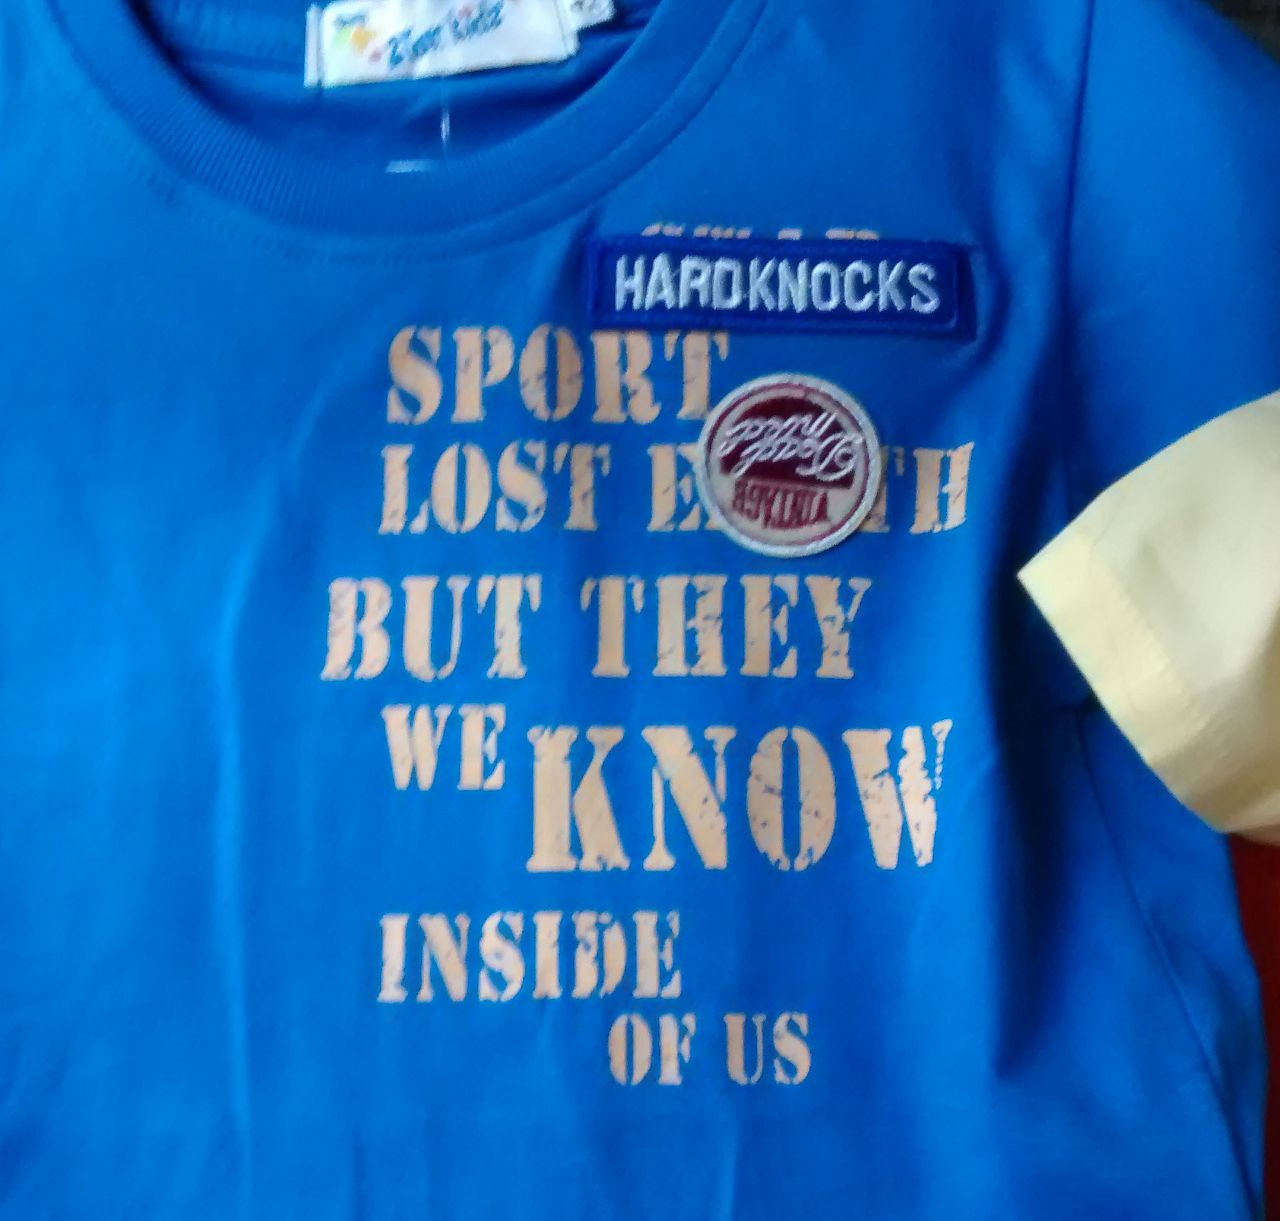 Hardknocks sport lost e*h but they we know inside of us